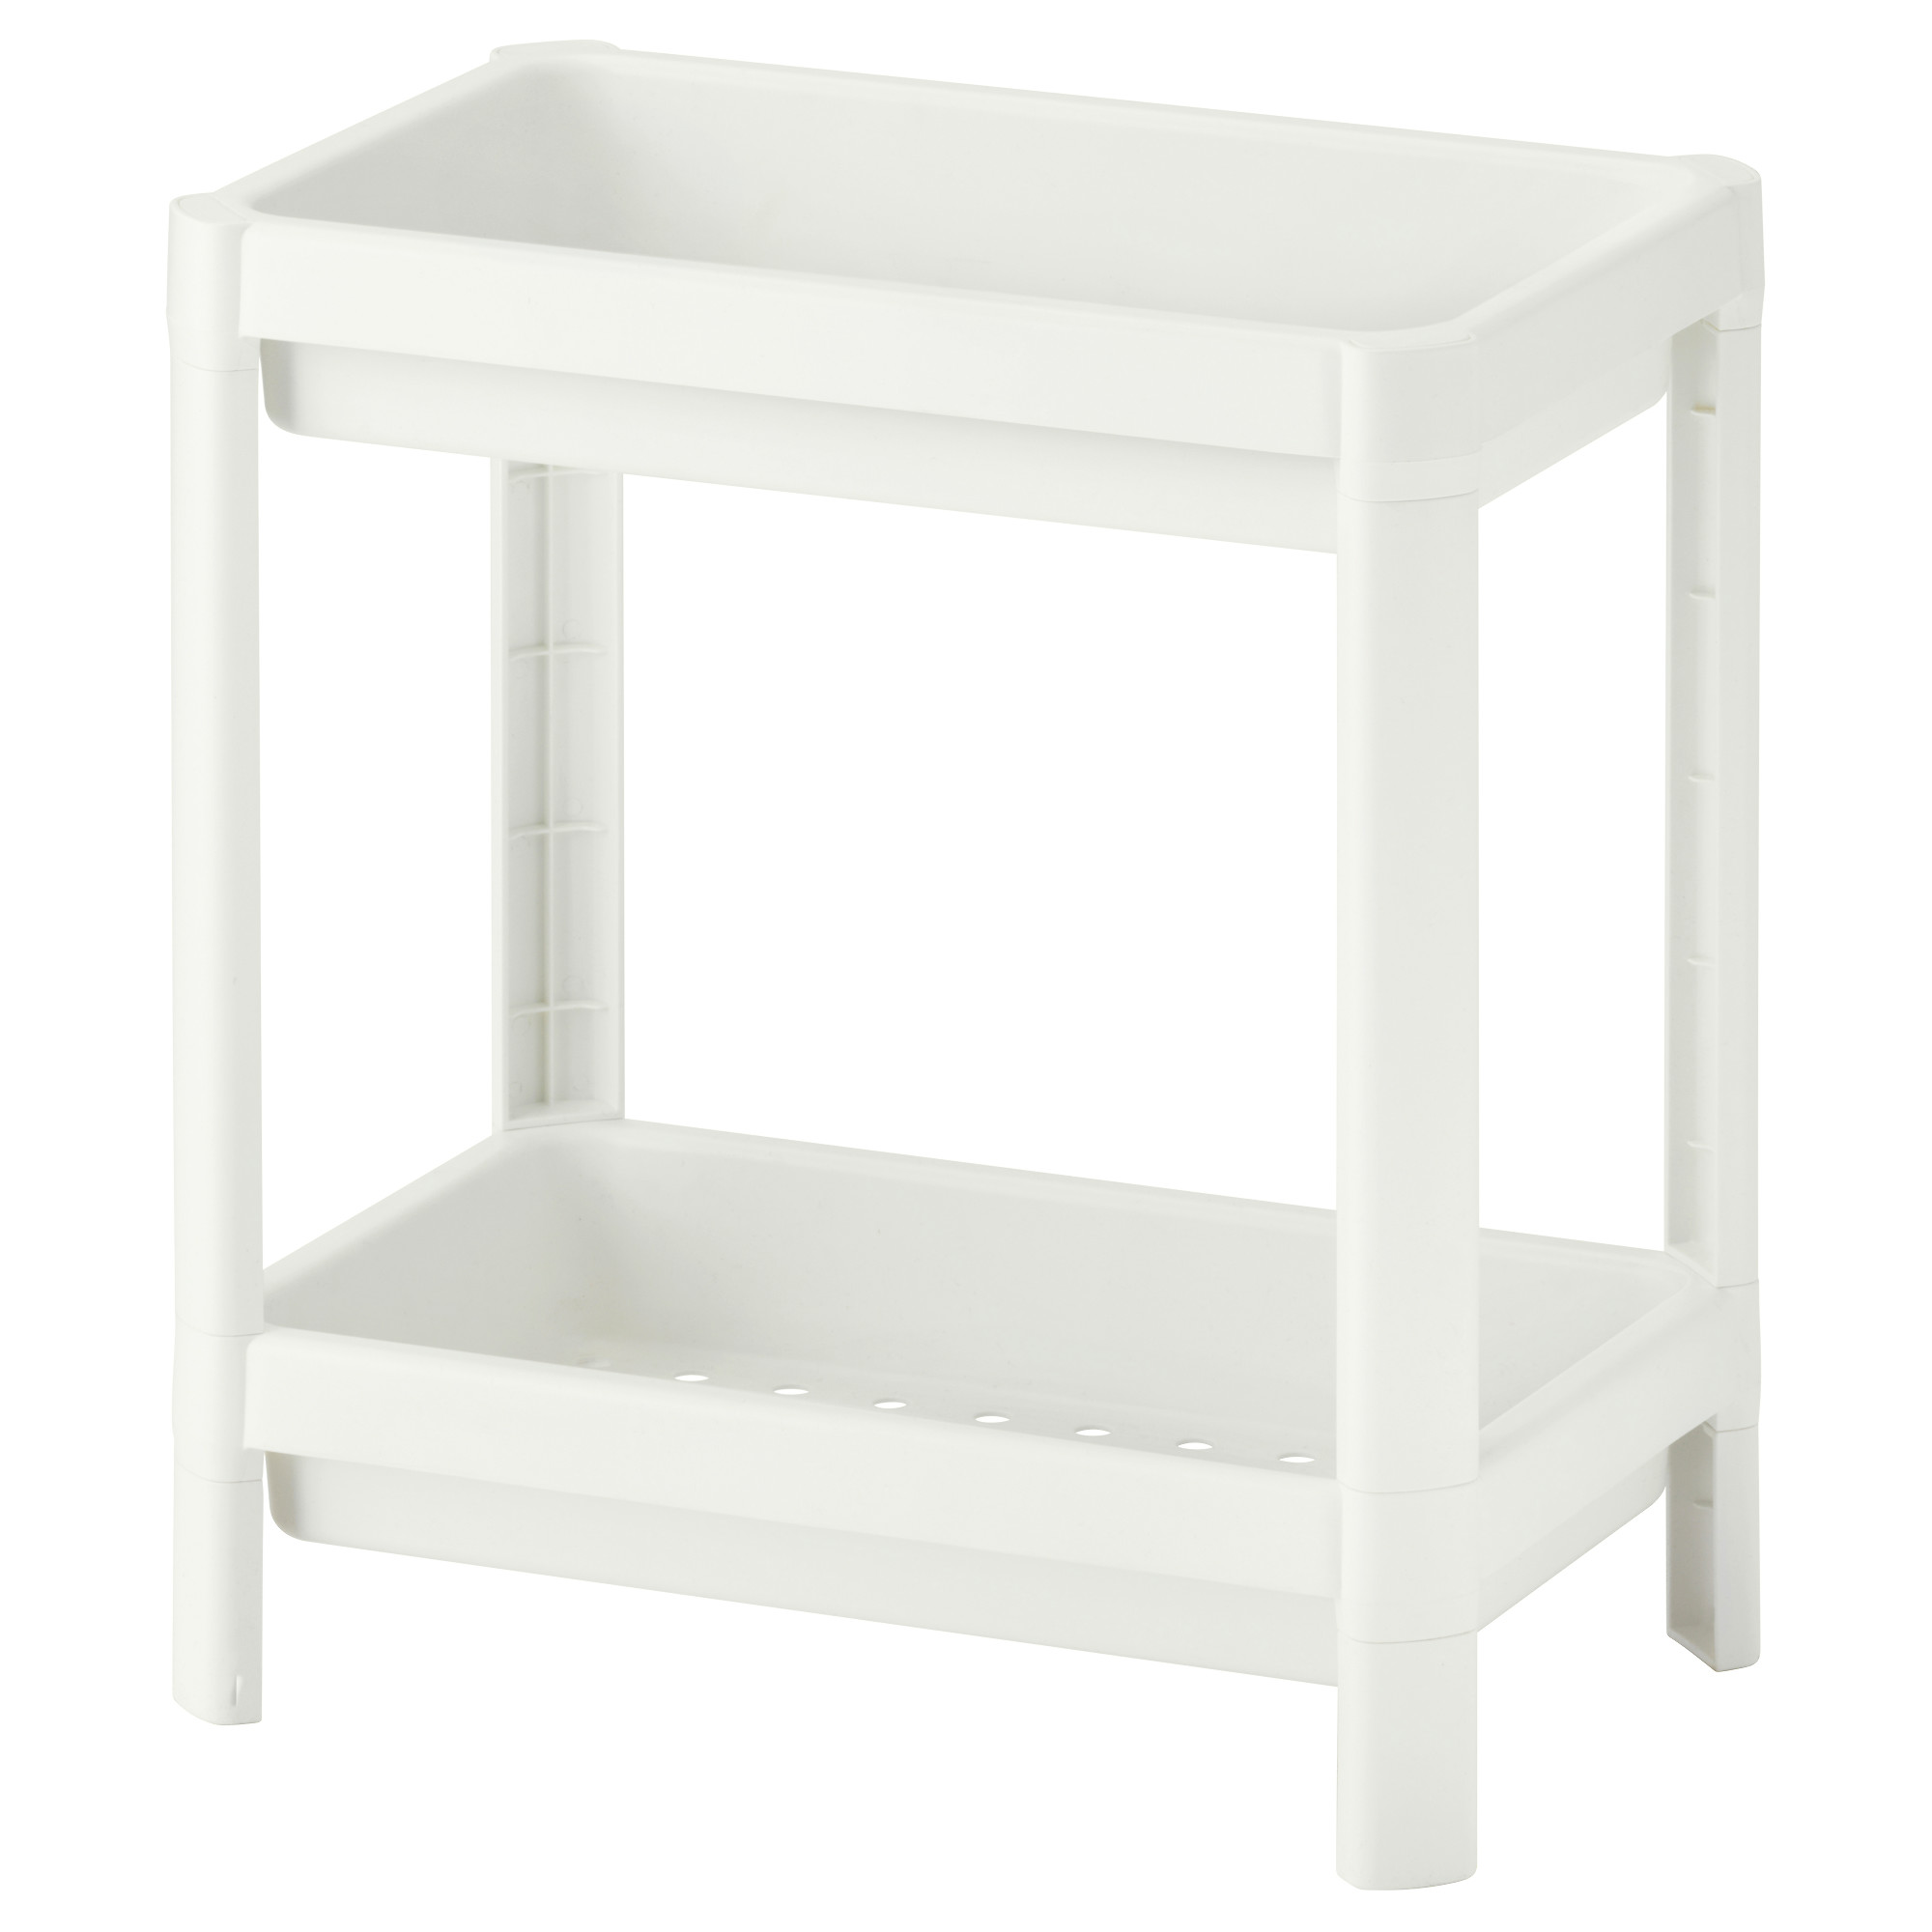 black ca catalog side ikea lack tables table white products en end